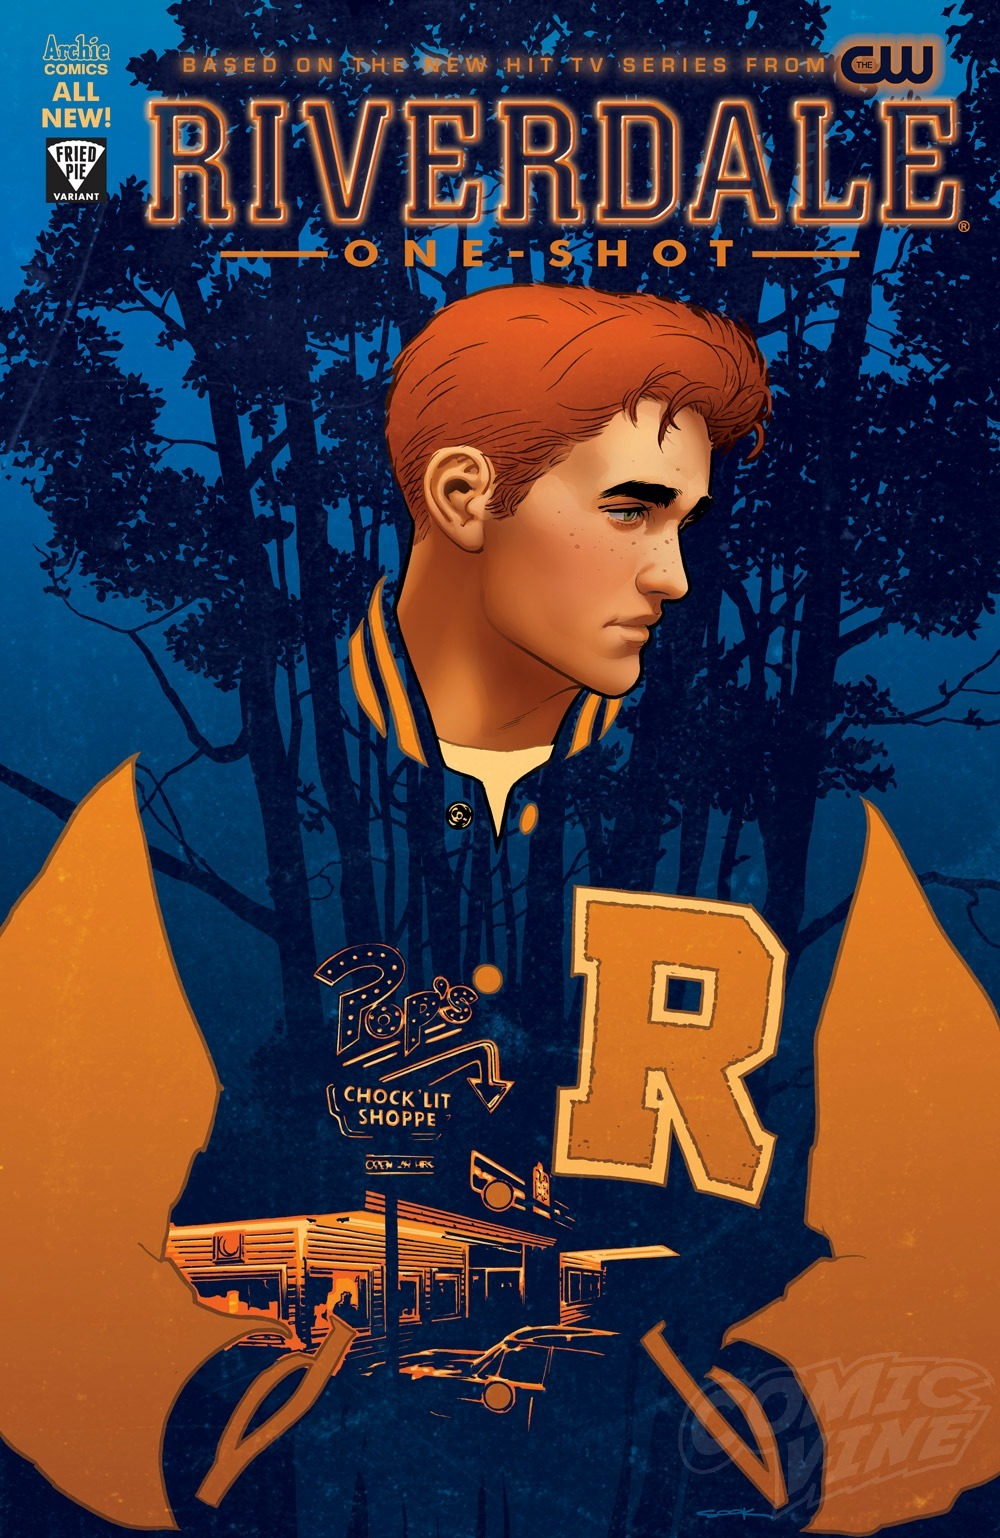 New Riverdale Trailer Debuts, Variant Cover For Tie-in Comic Revealed